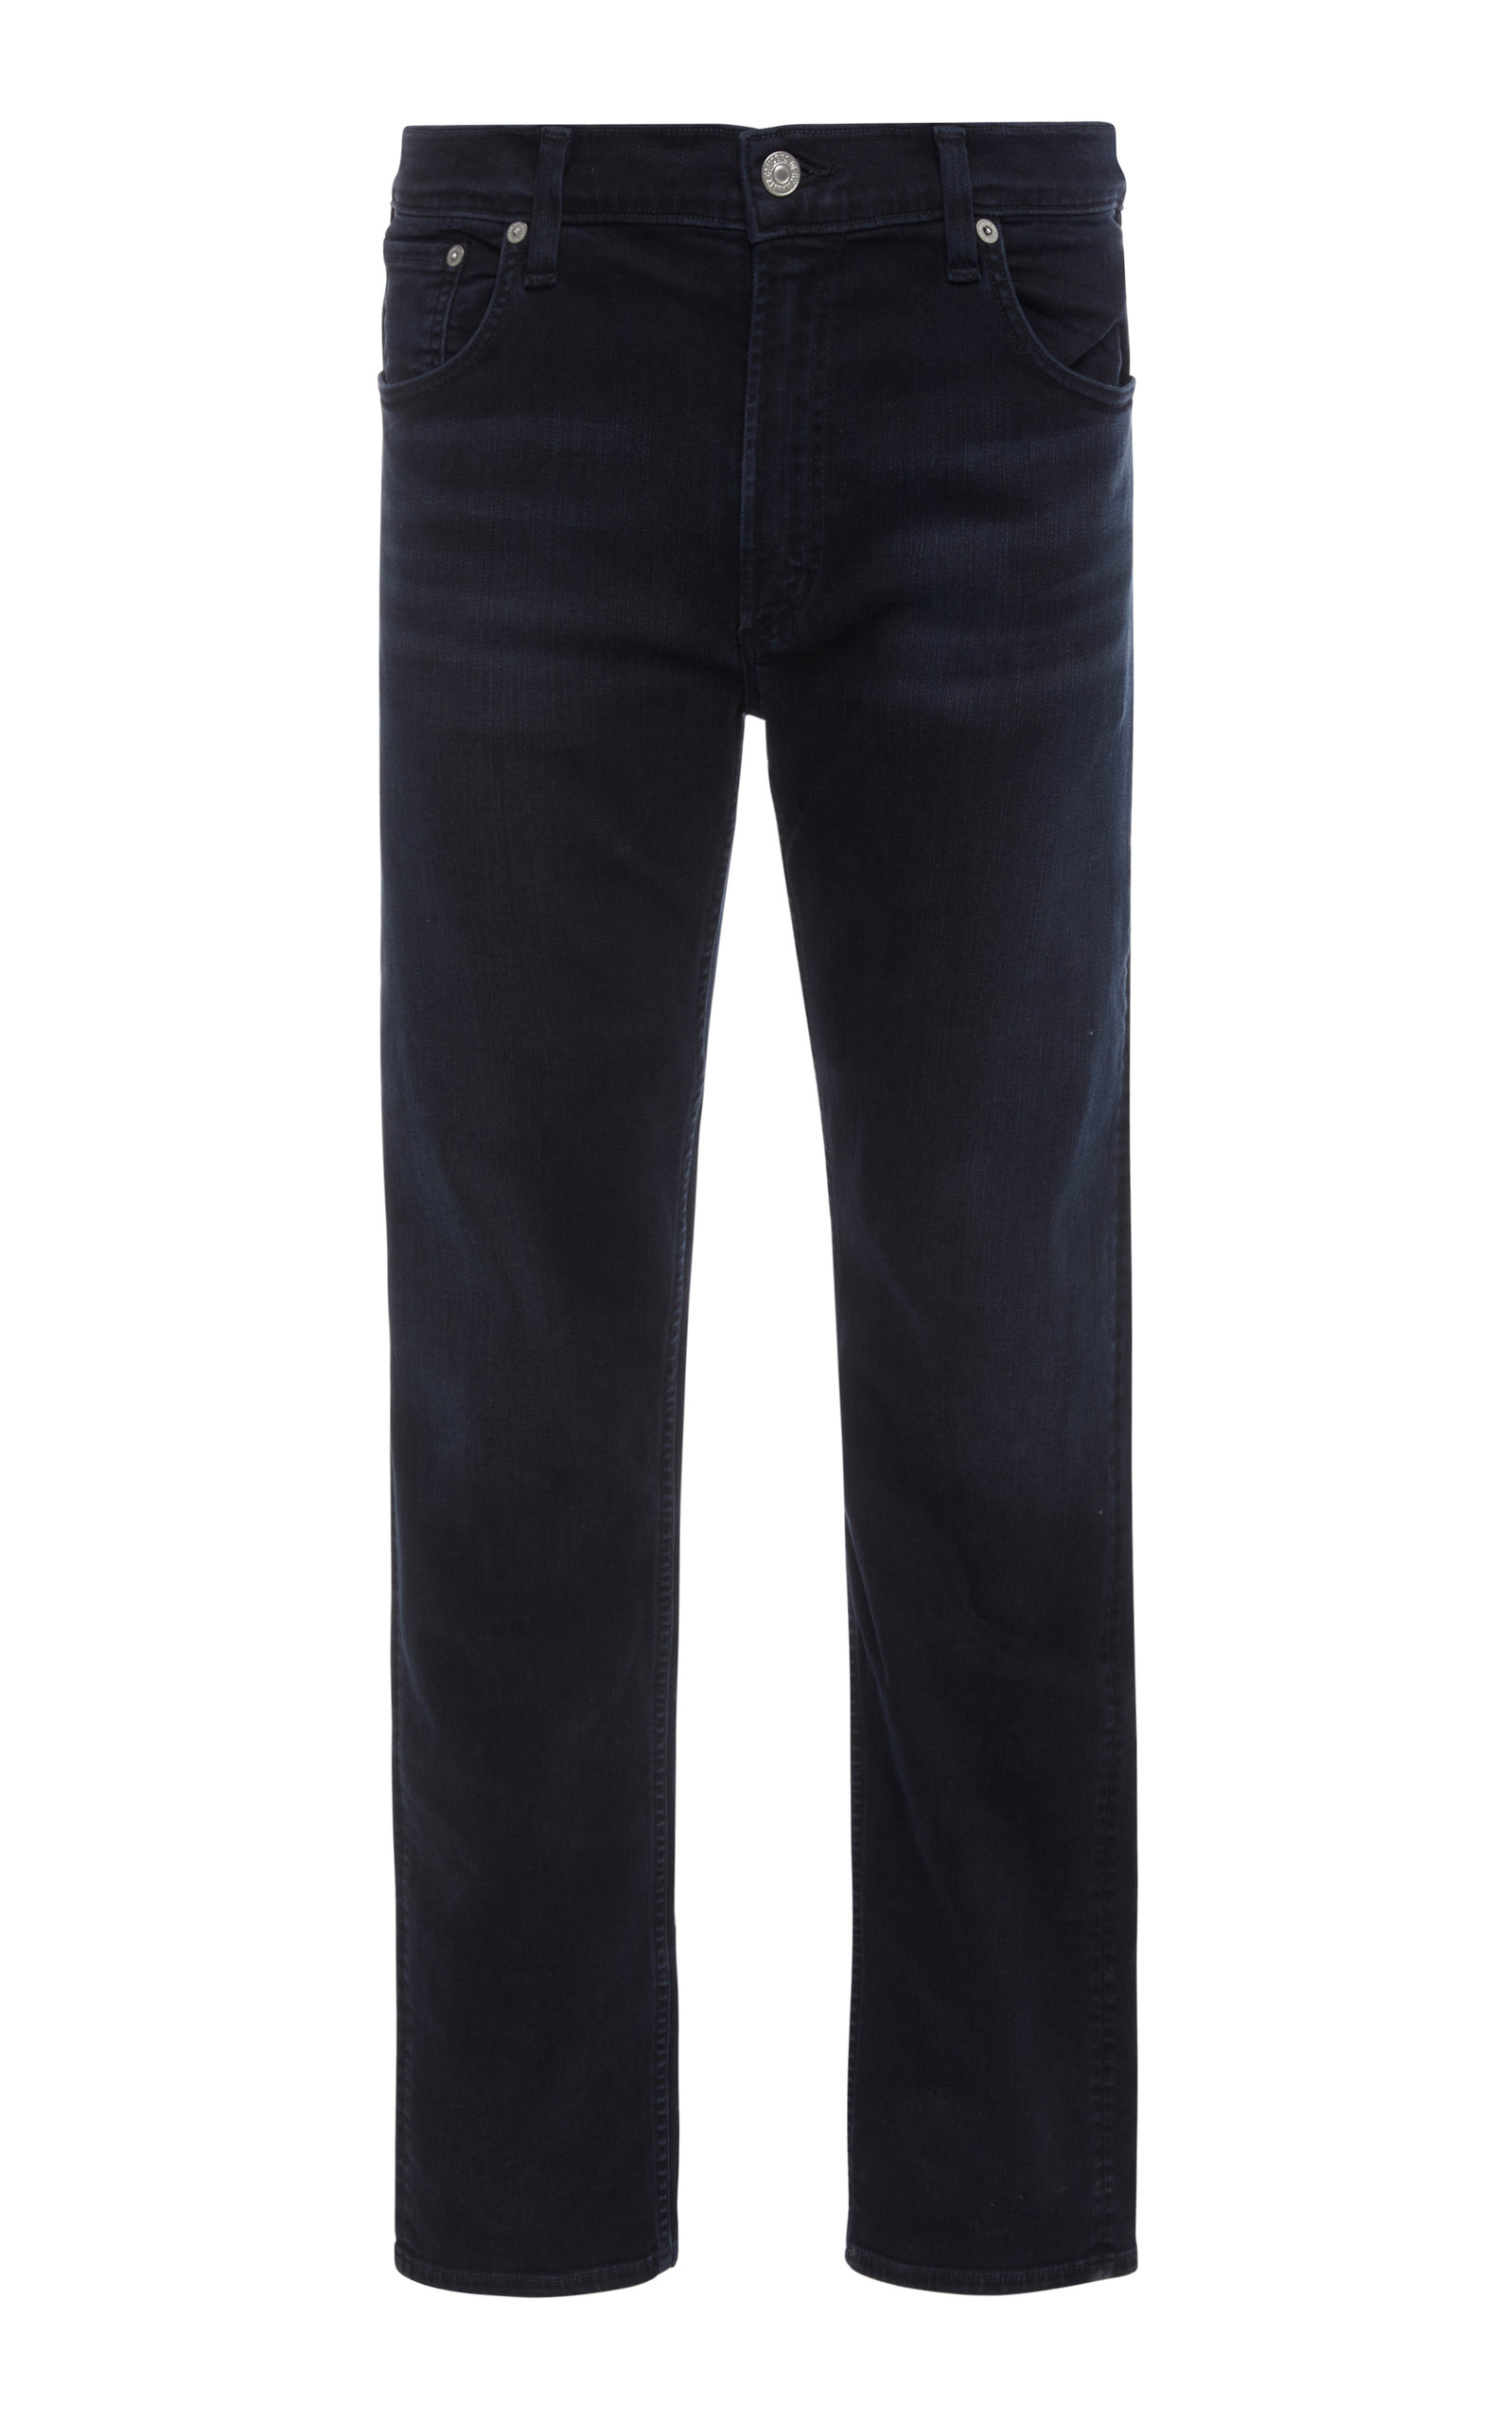 Citizens Of Humanity NOAH DARK-WASH SKINNY JEANS SIZE: 36